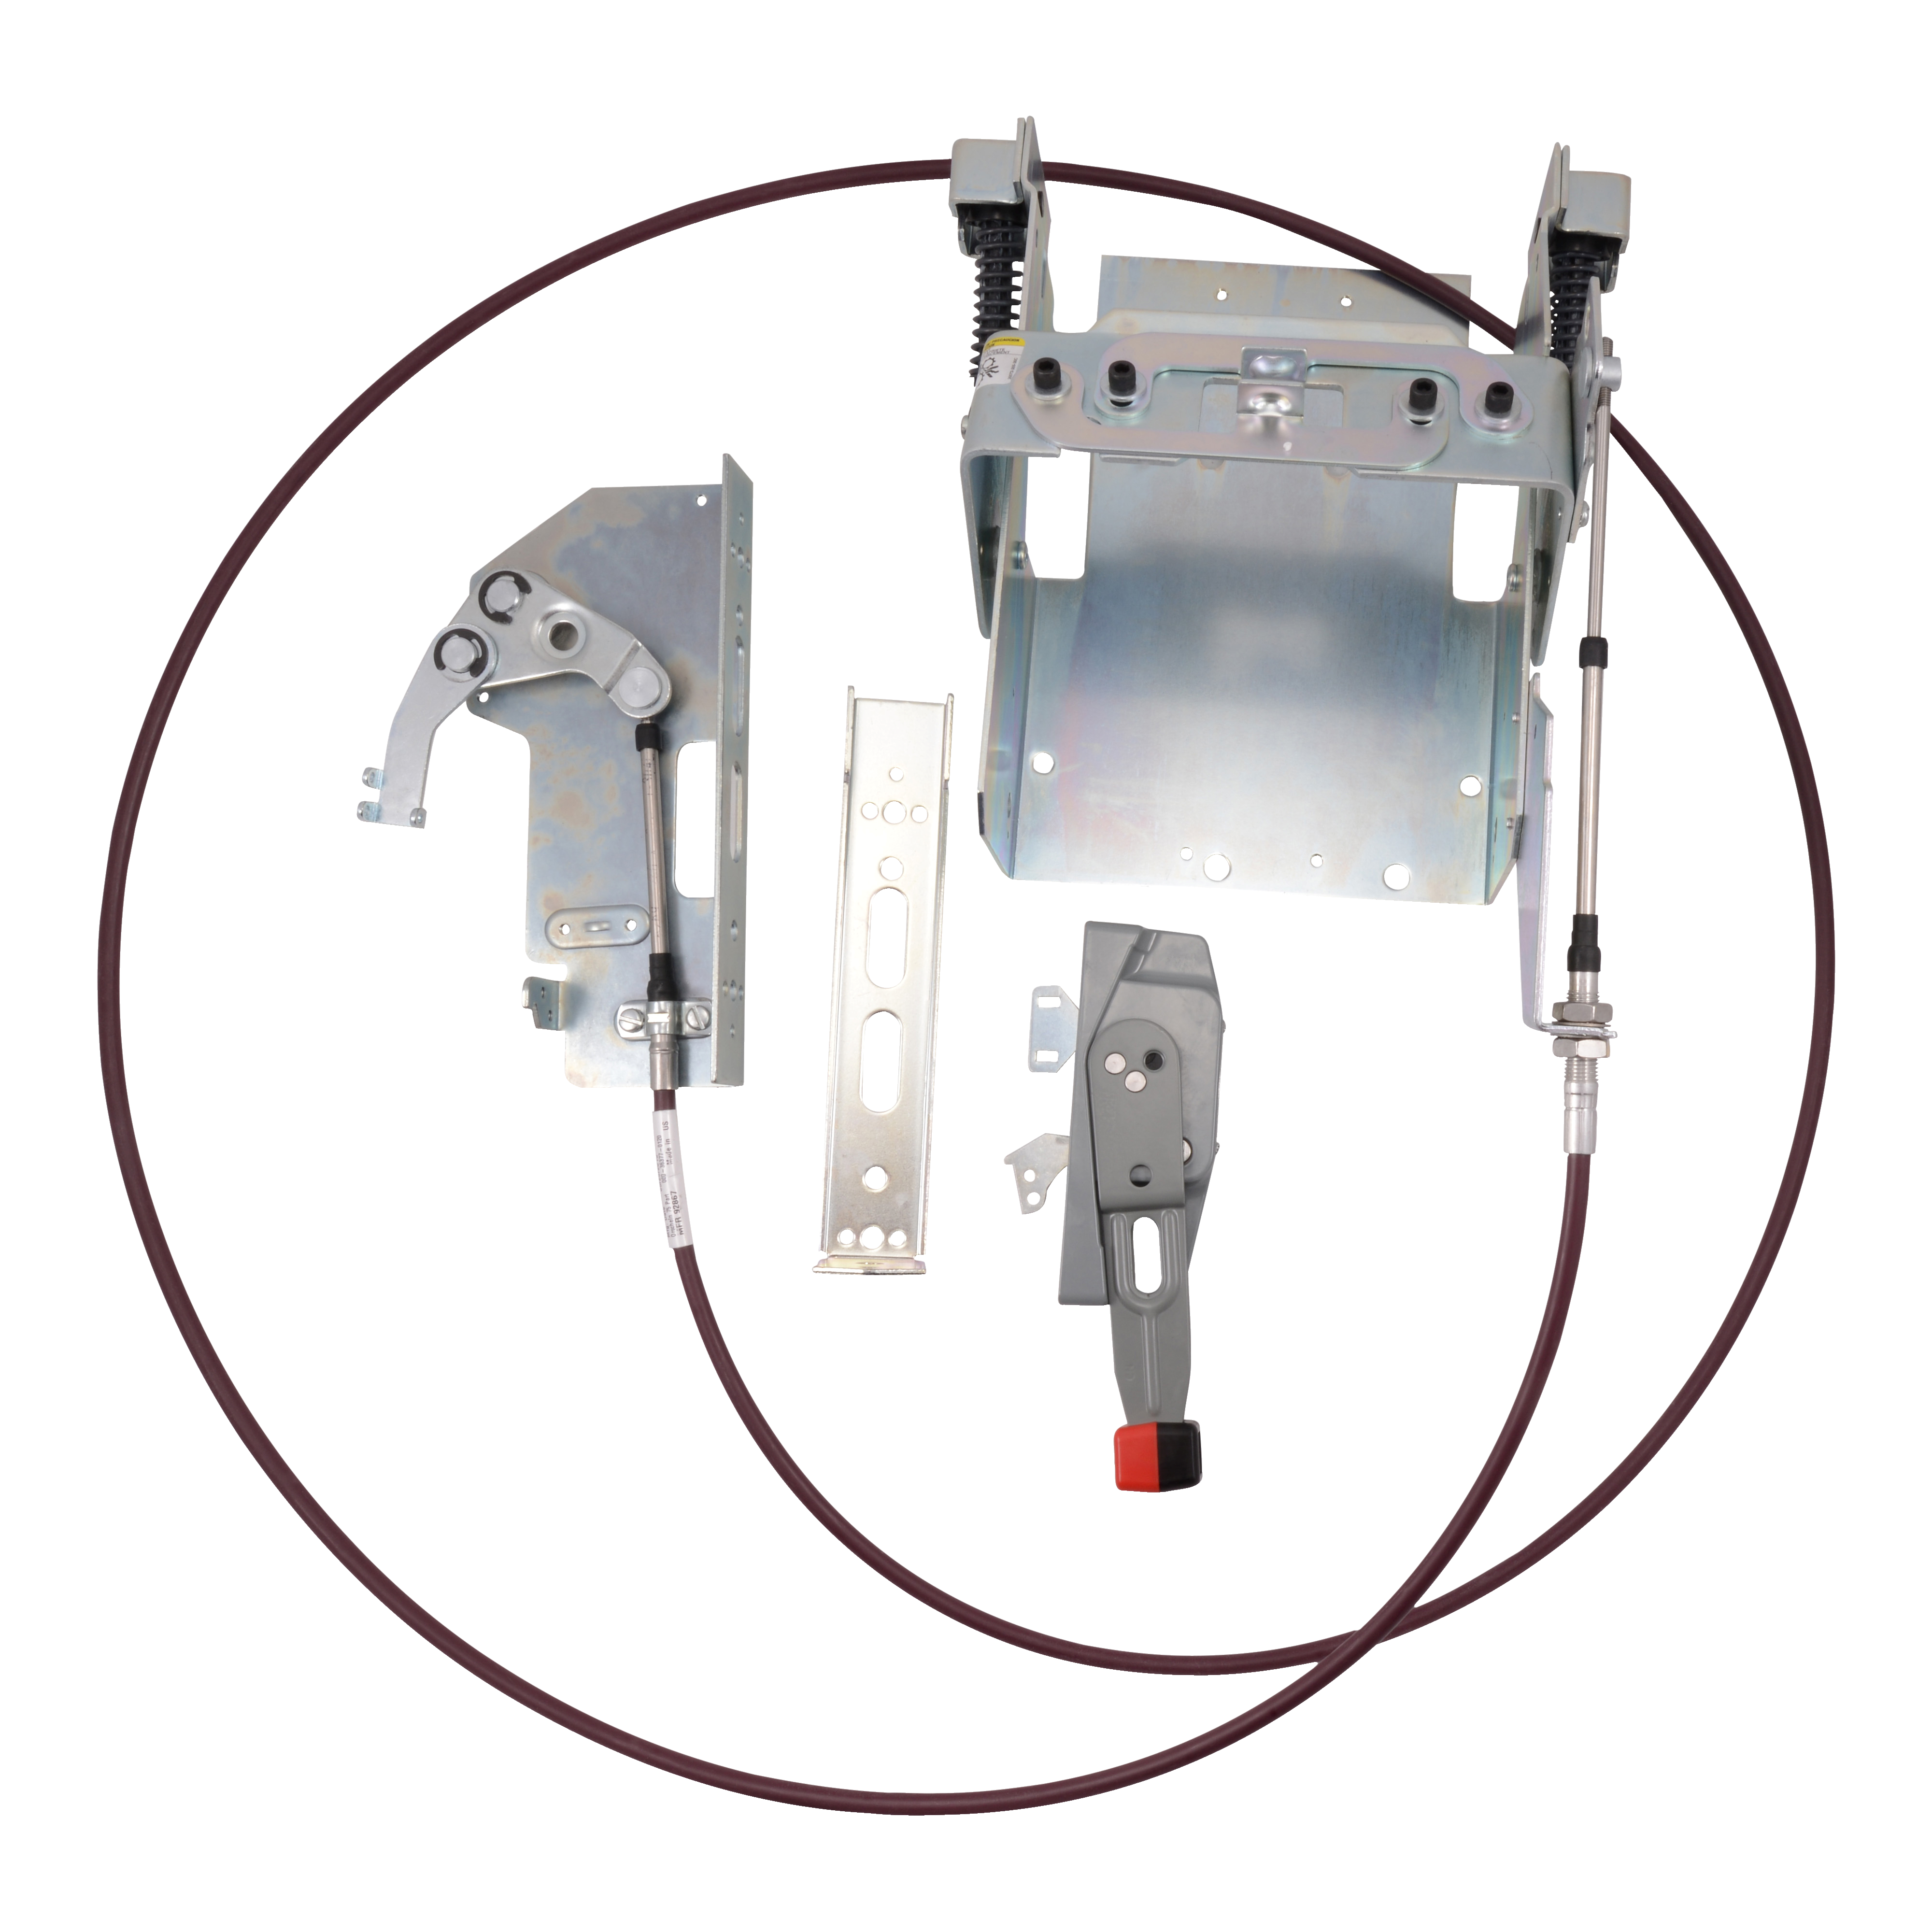 SQUARE D 9422 Cable Operated Mechanisms for Circuit Breaker Mechanisms - 9422CGJ31